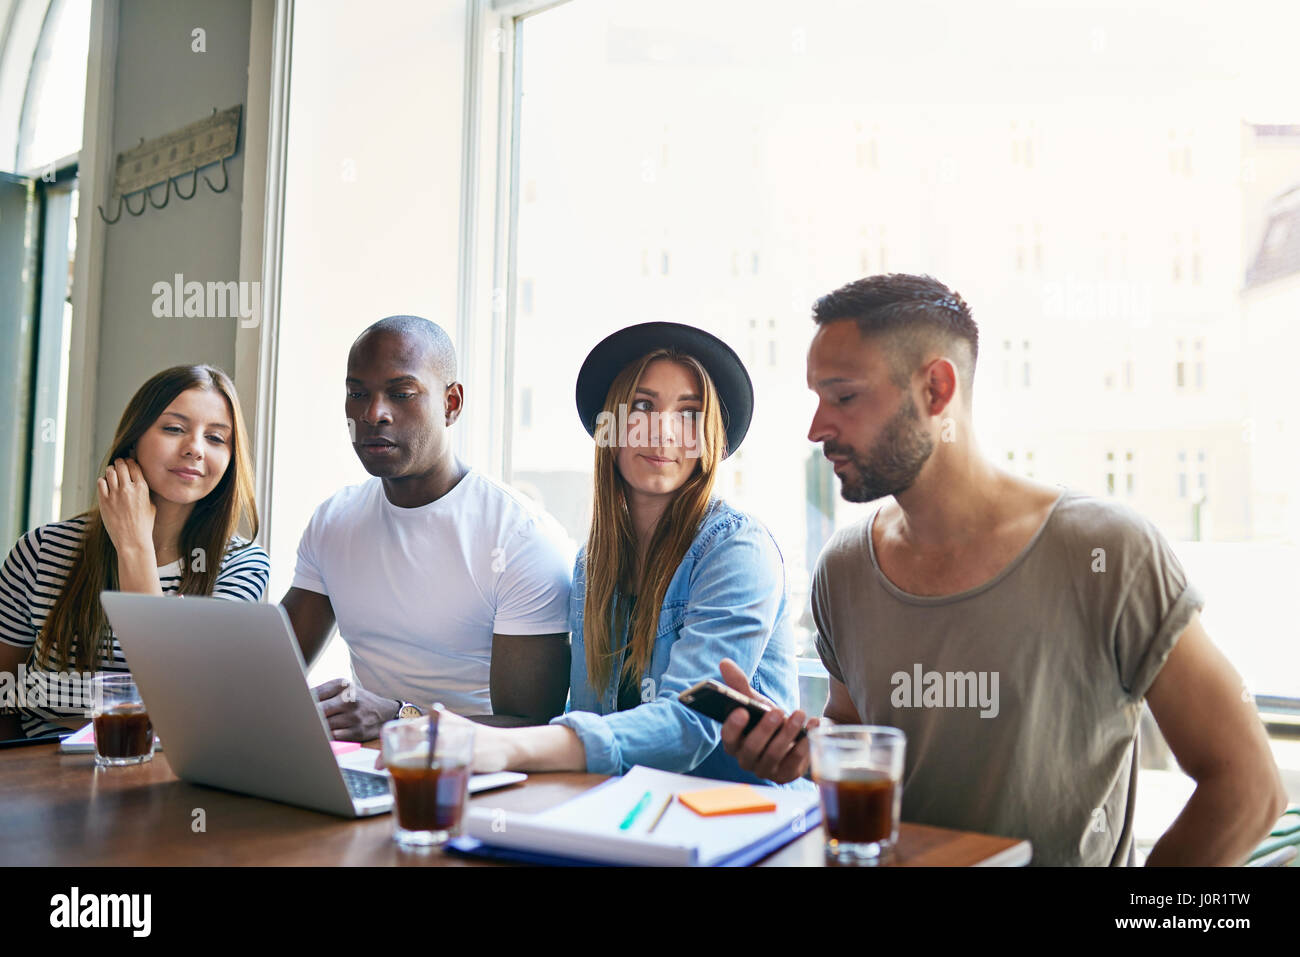 Group of four young co-workers sitting at table with laptop and having coffee while discussion in office. Stock Photo